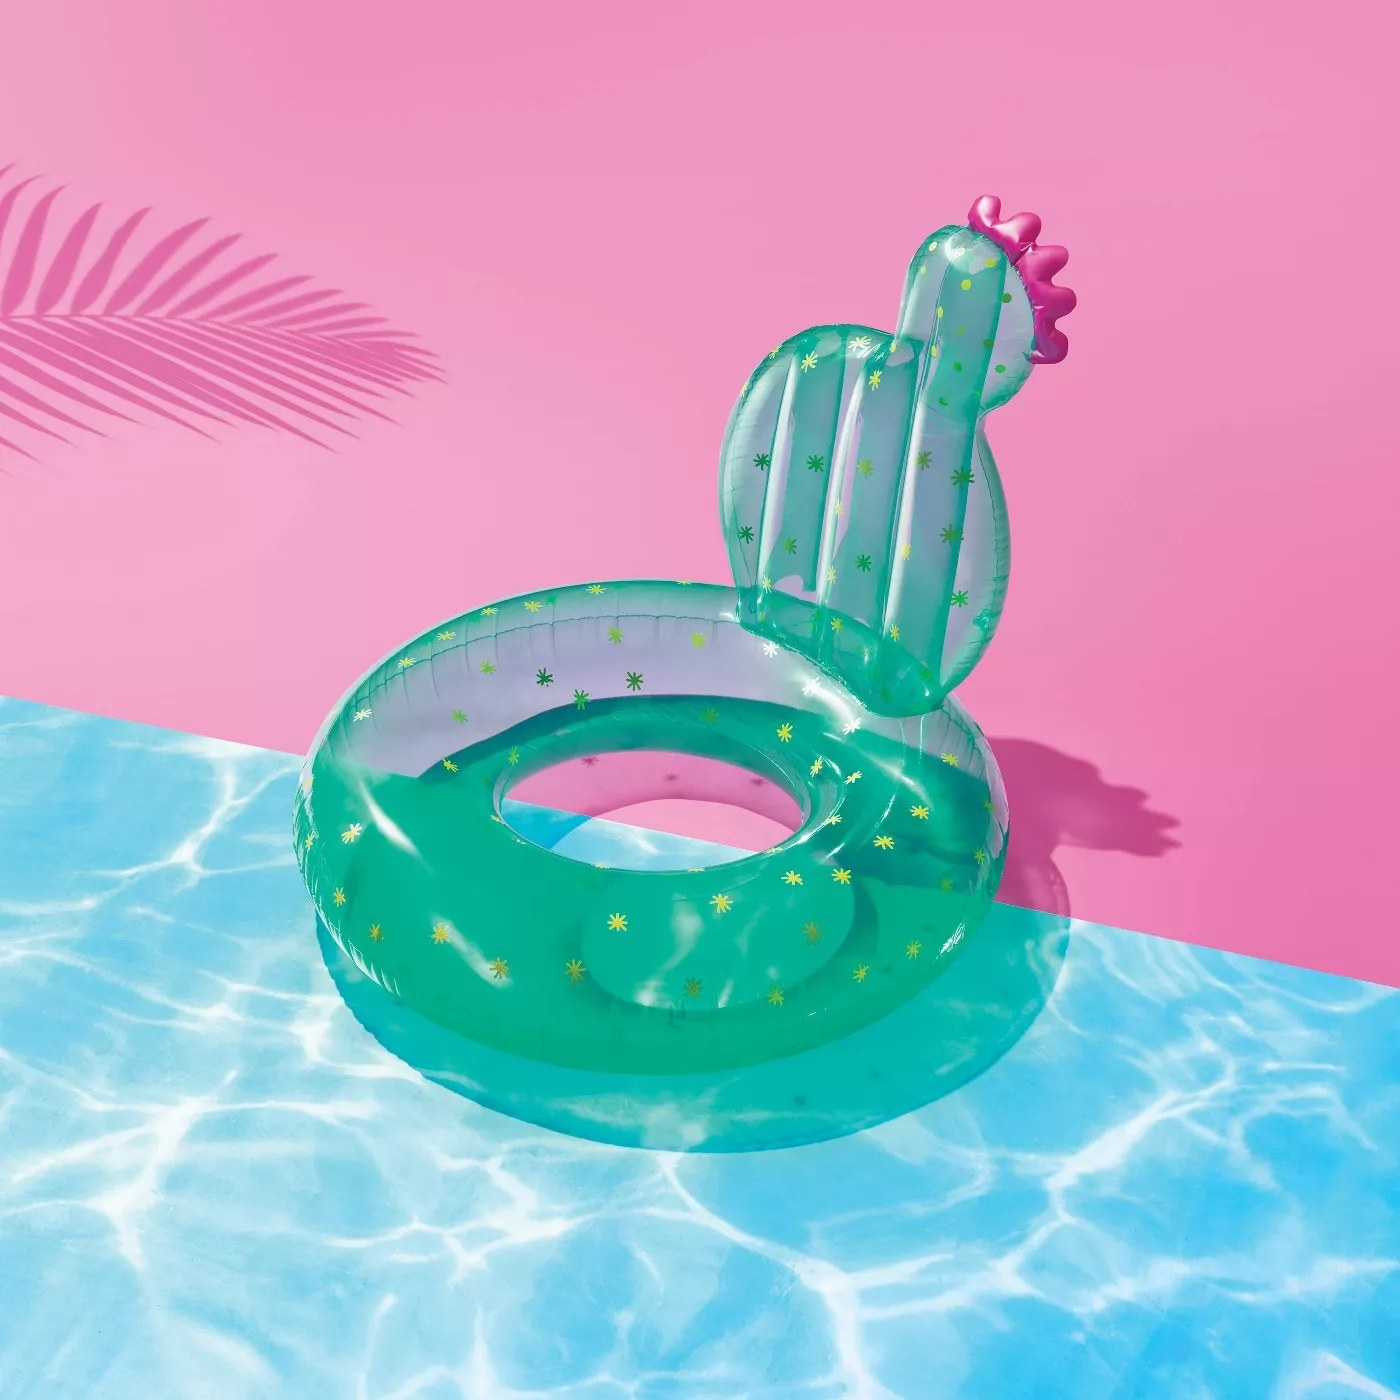 The cactus float is green with yellow spikes and a pink flower at the top